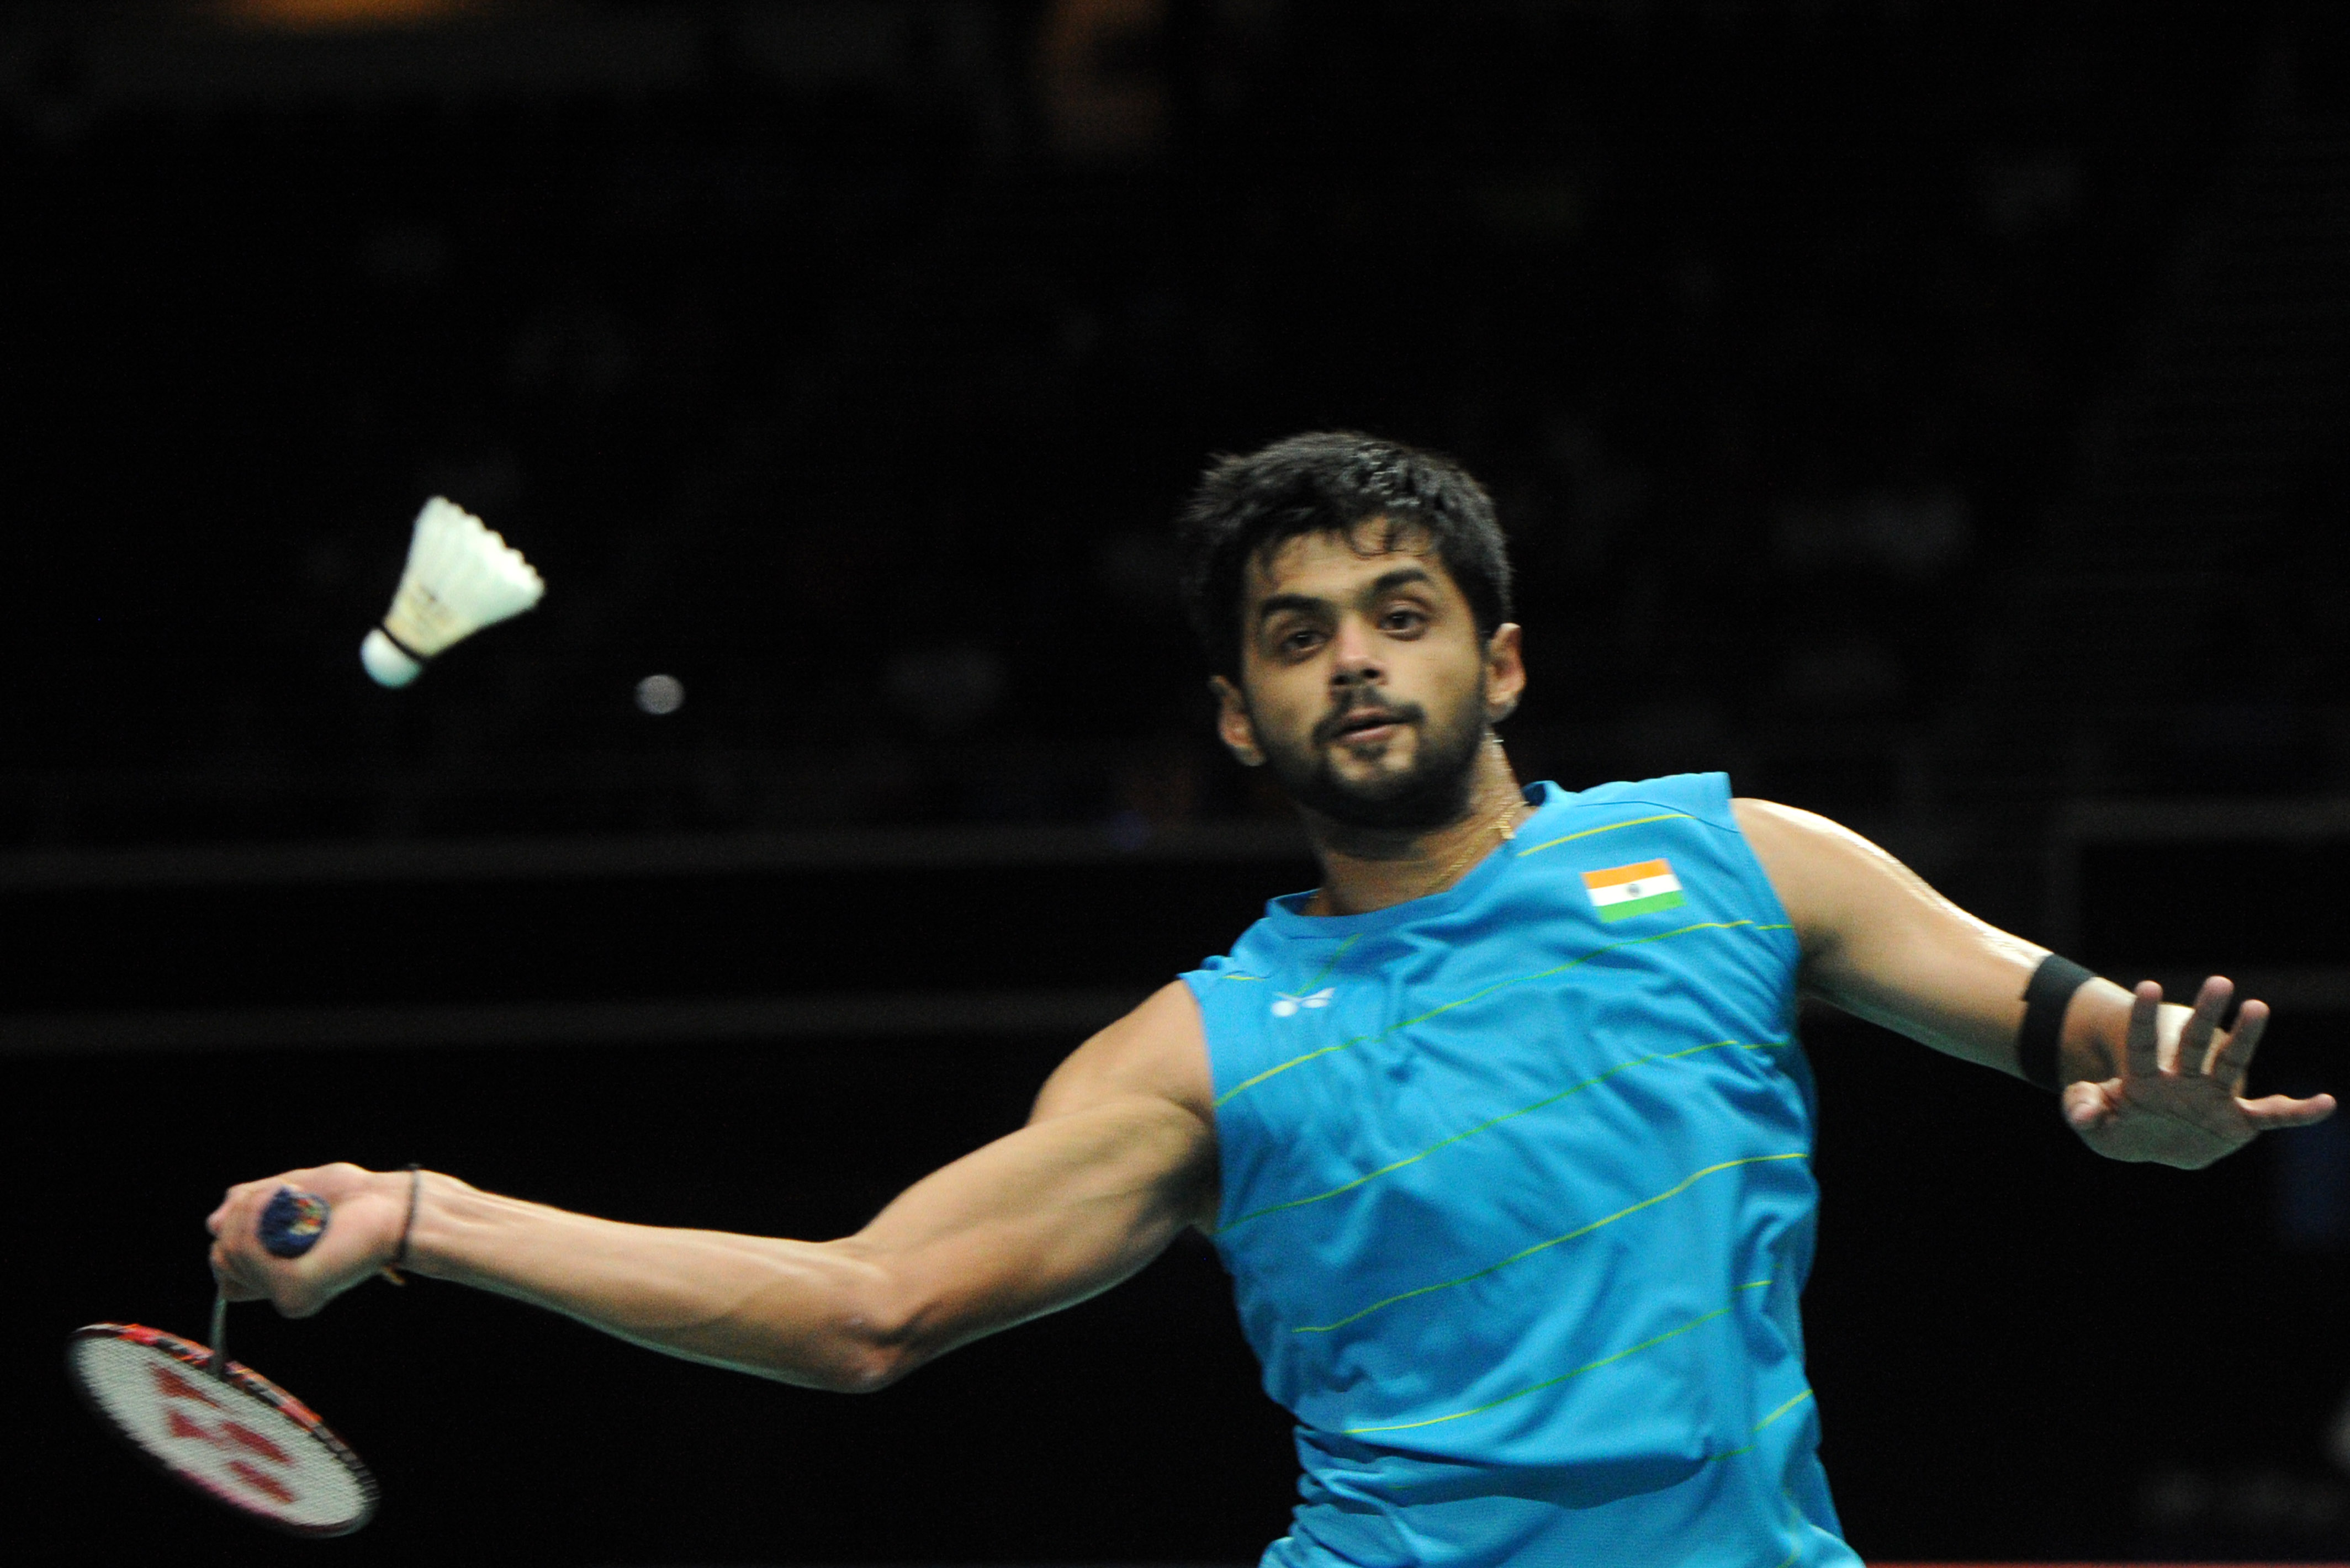 Sindhu Praneeth advance Sumeeth Ashwini lose at Badminton Worlds